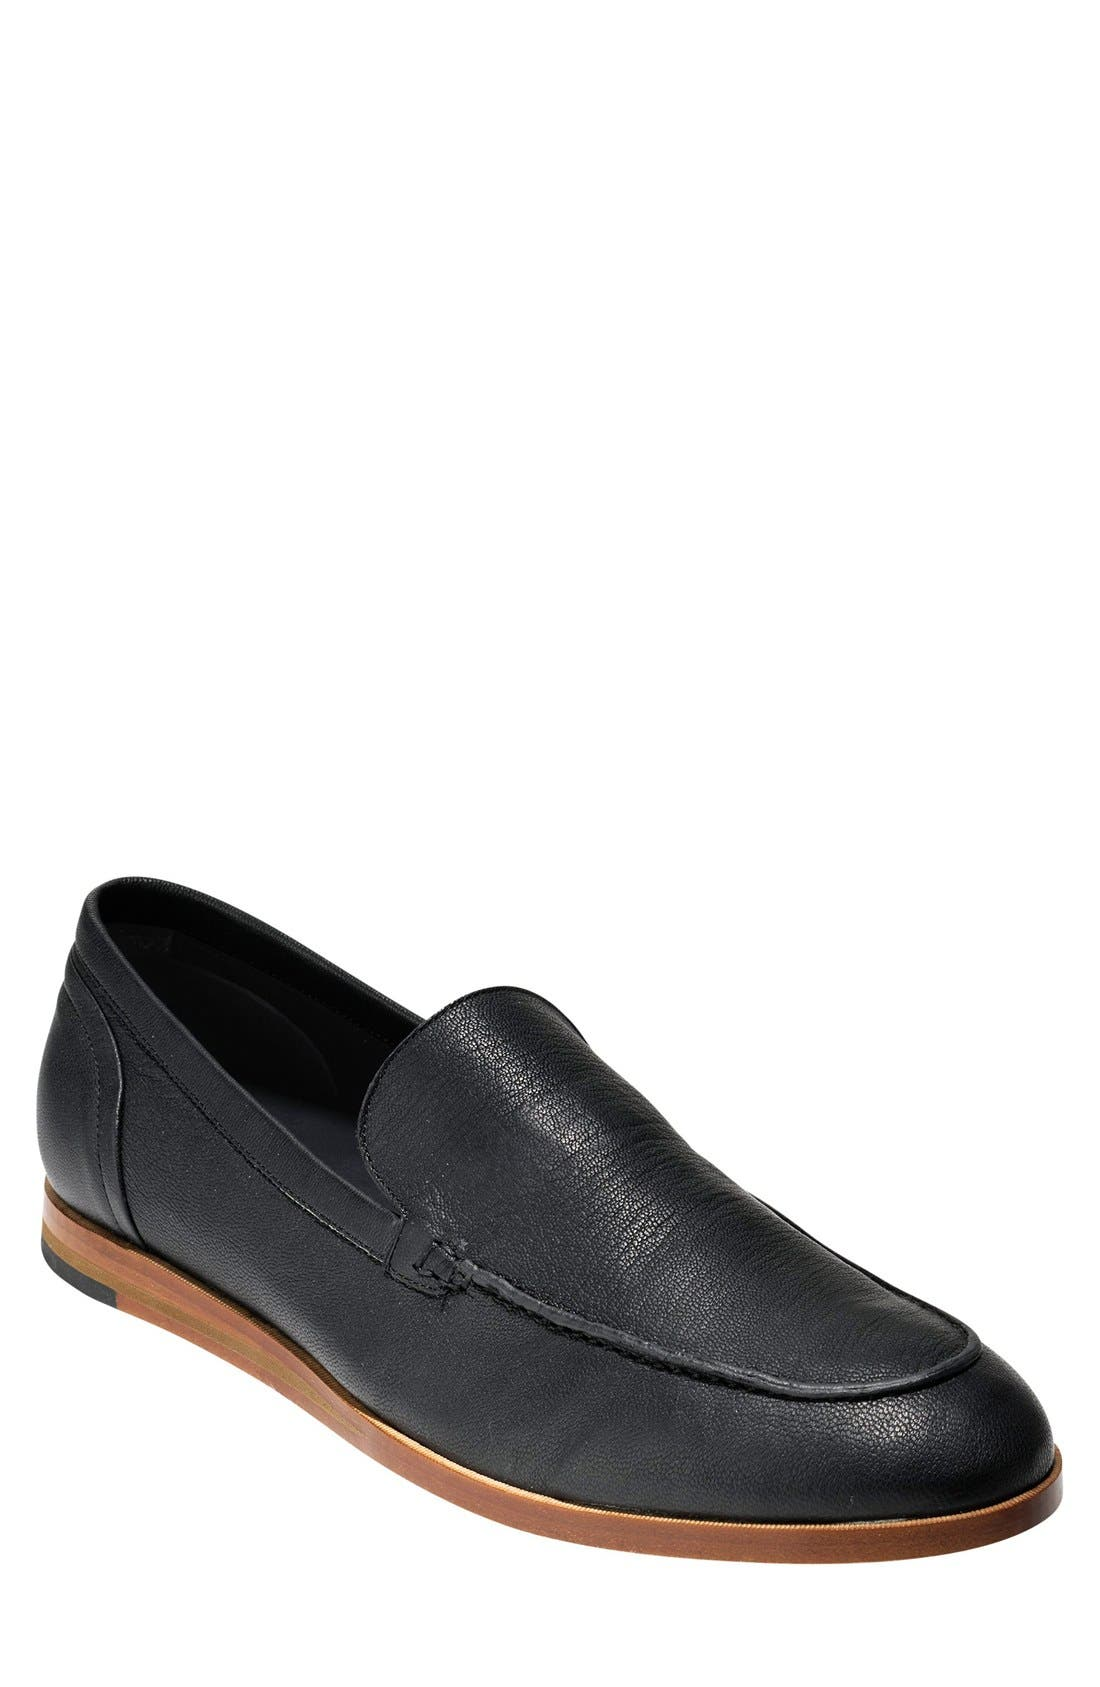 'Bedford' Loafer,                             Main thumbnail 1, color,                             001